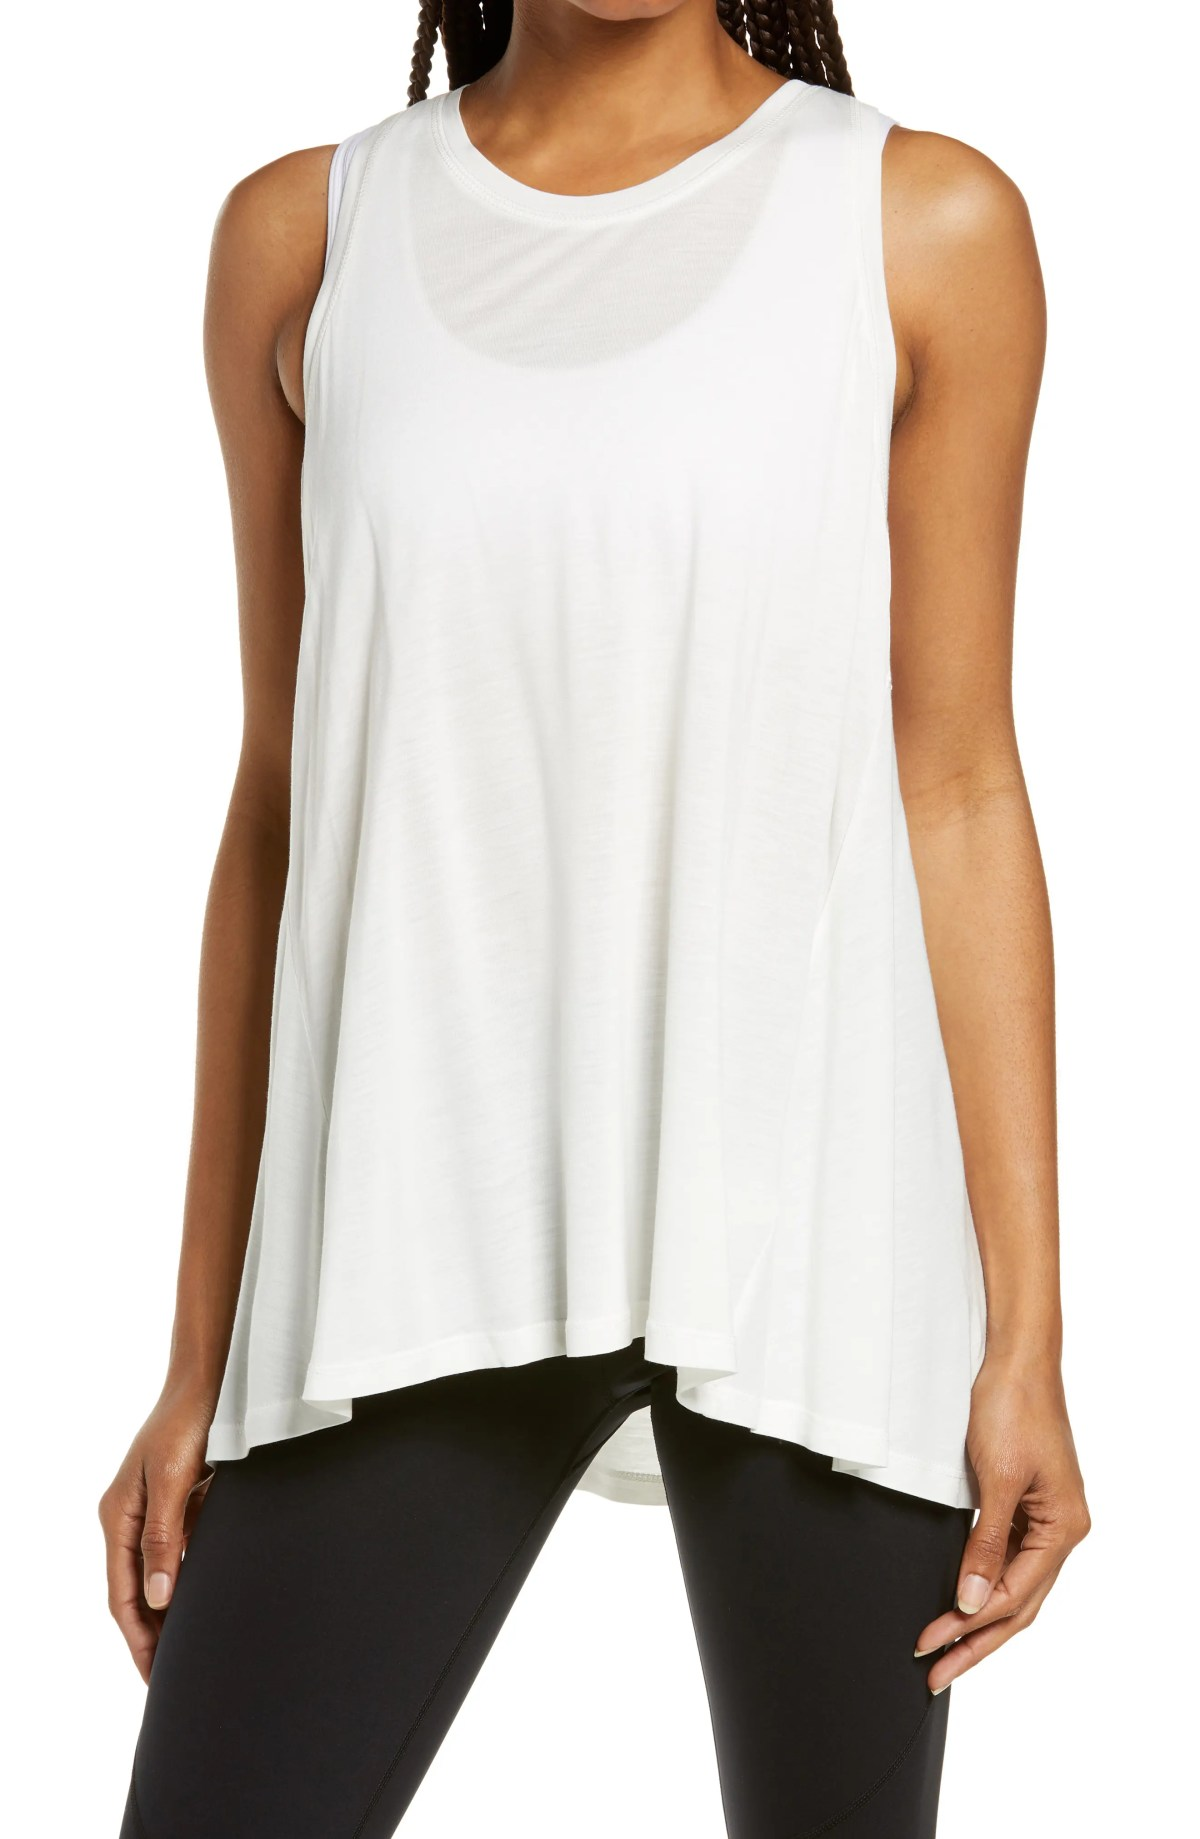 SWEATY BETTY Easy Peazy Tank Top, Main, color, LILY WHITE